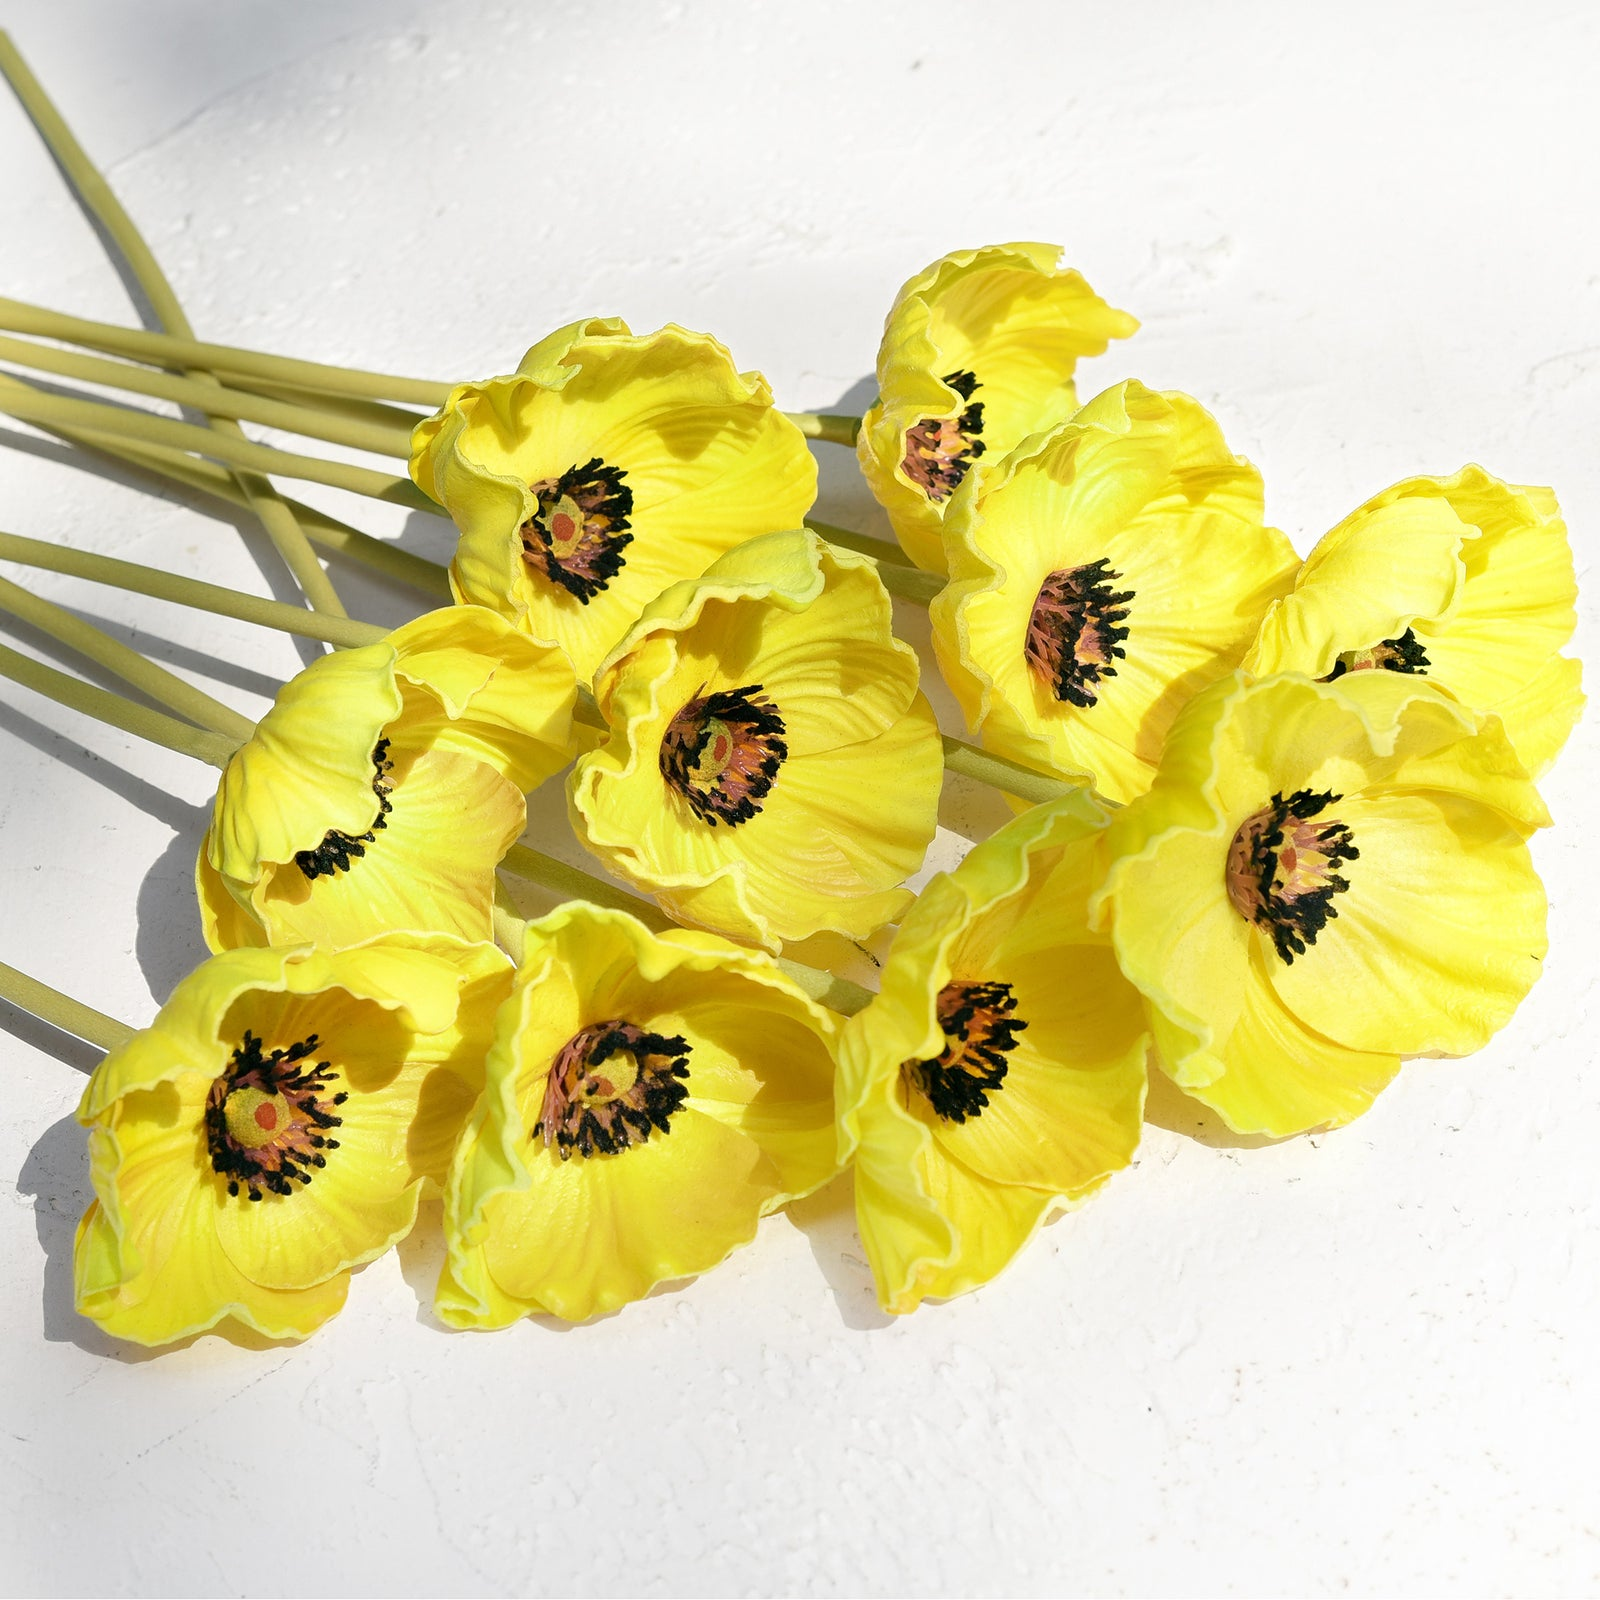 FiveSeasonStuff 10 Stems of Real Touch Artificial Poppy Flowers Home Decoration Remembrance Day Yellow Flowers